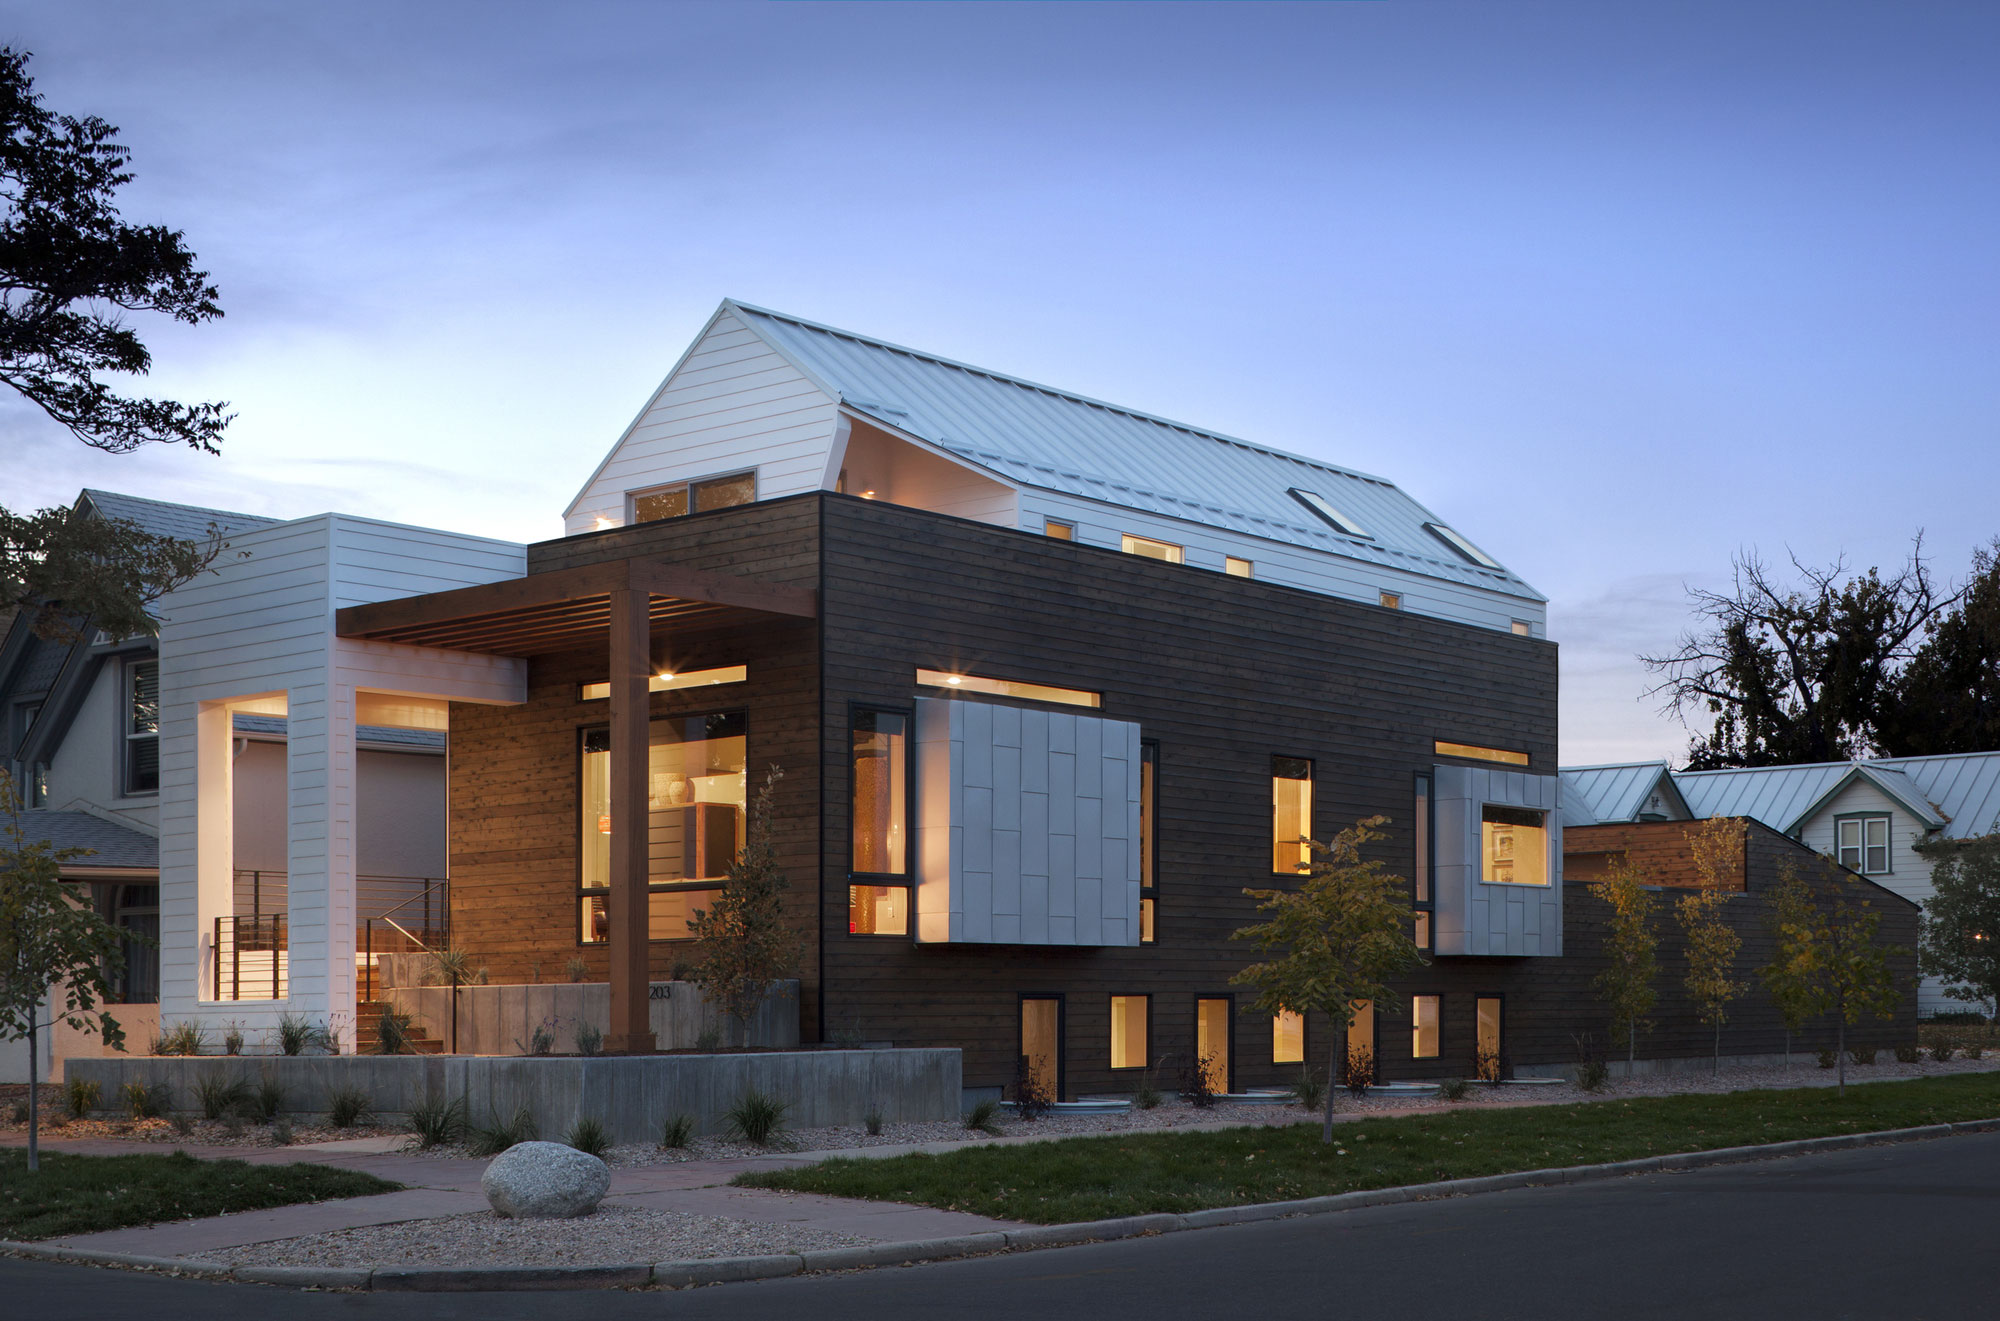 33rd Street House by Meridian 105 Architecture (10)